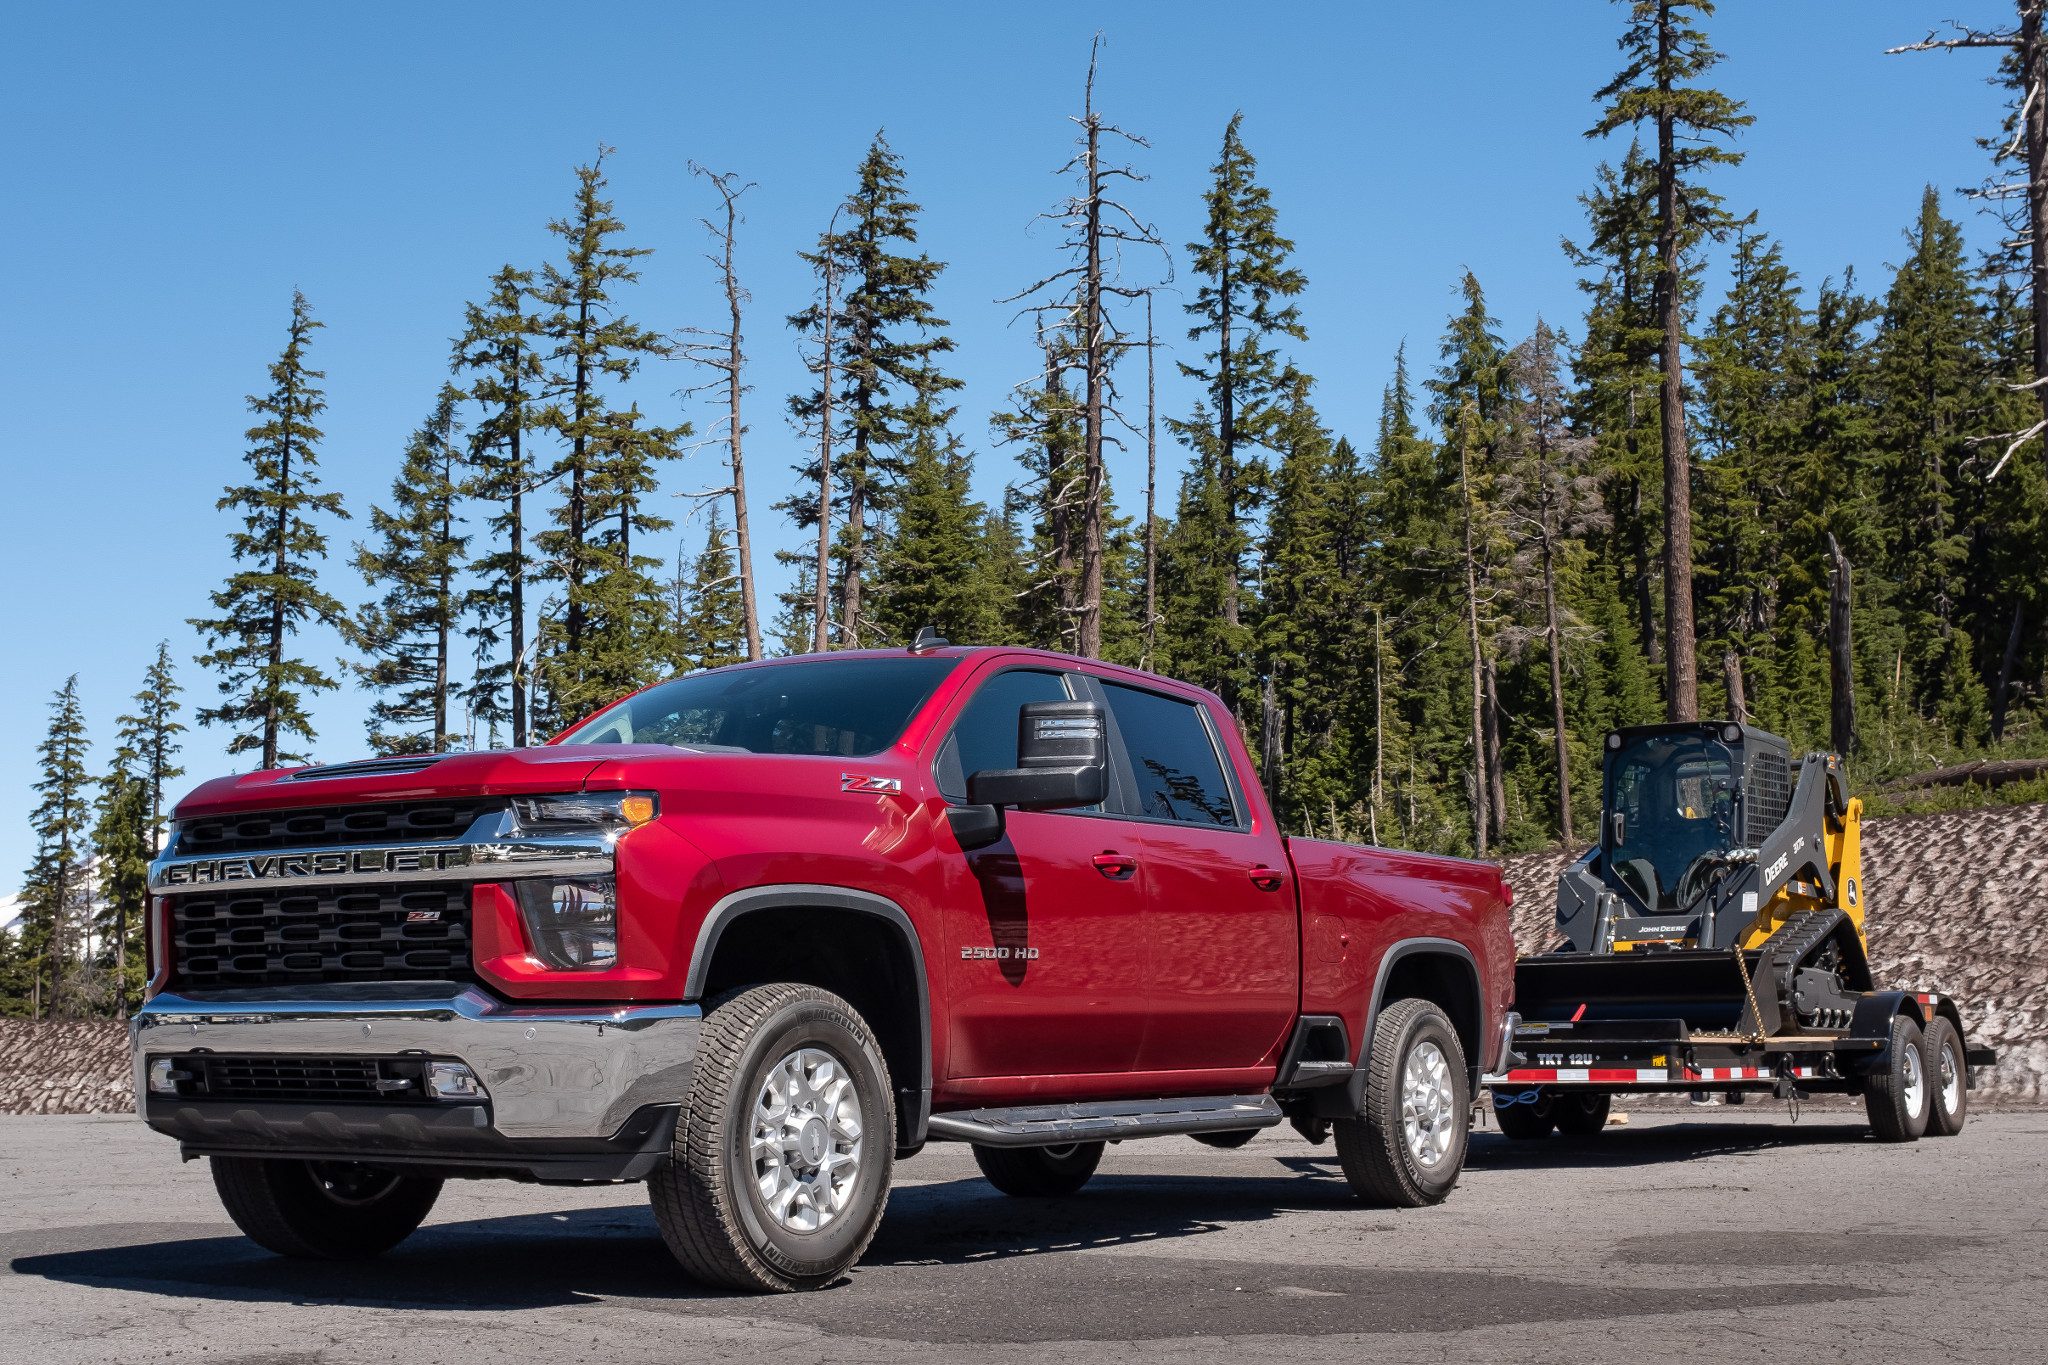 chevrolet-silverado-2500-2020-02-angle--exterior--front--red--towing.jpg